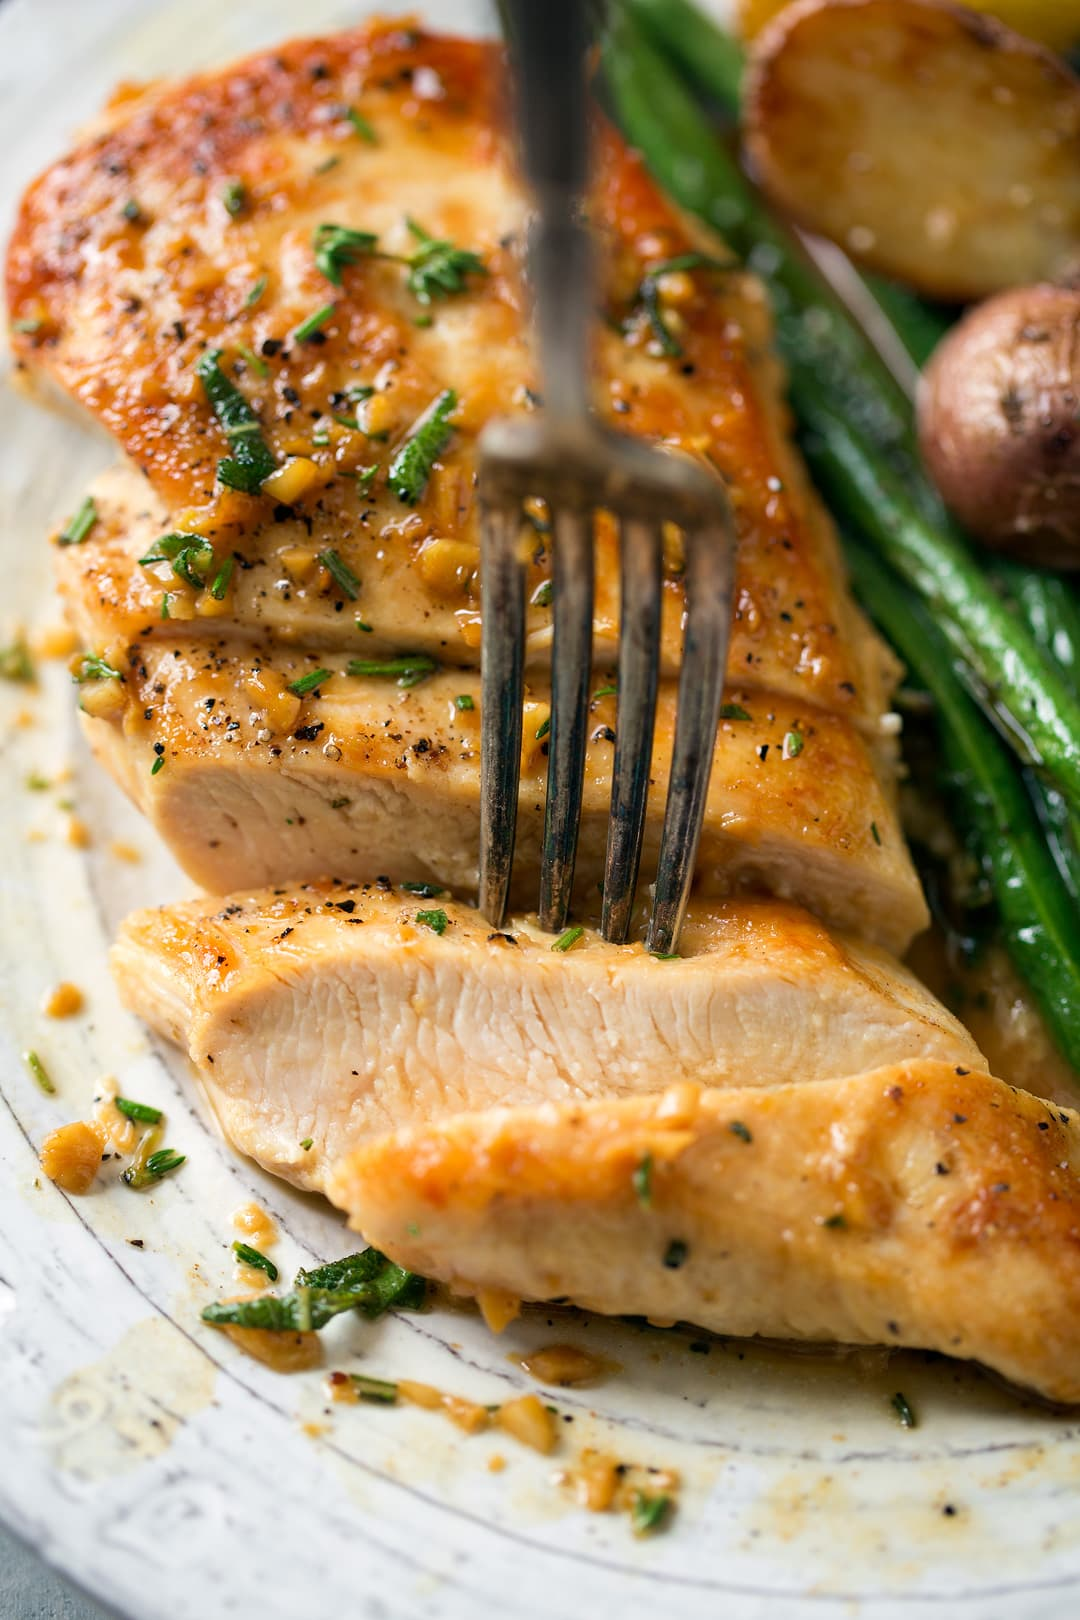 Skillet Chicken with Garlic Herb Butter Sauce